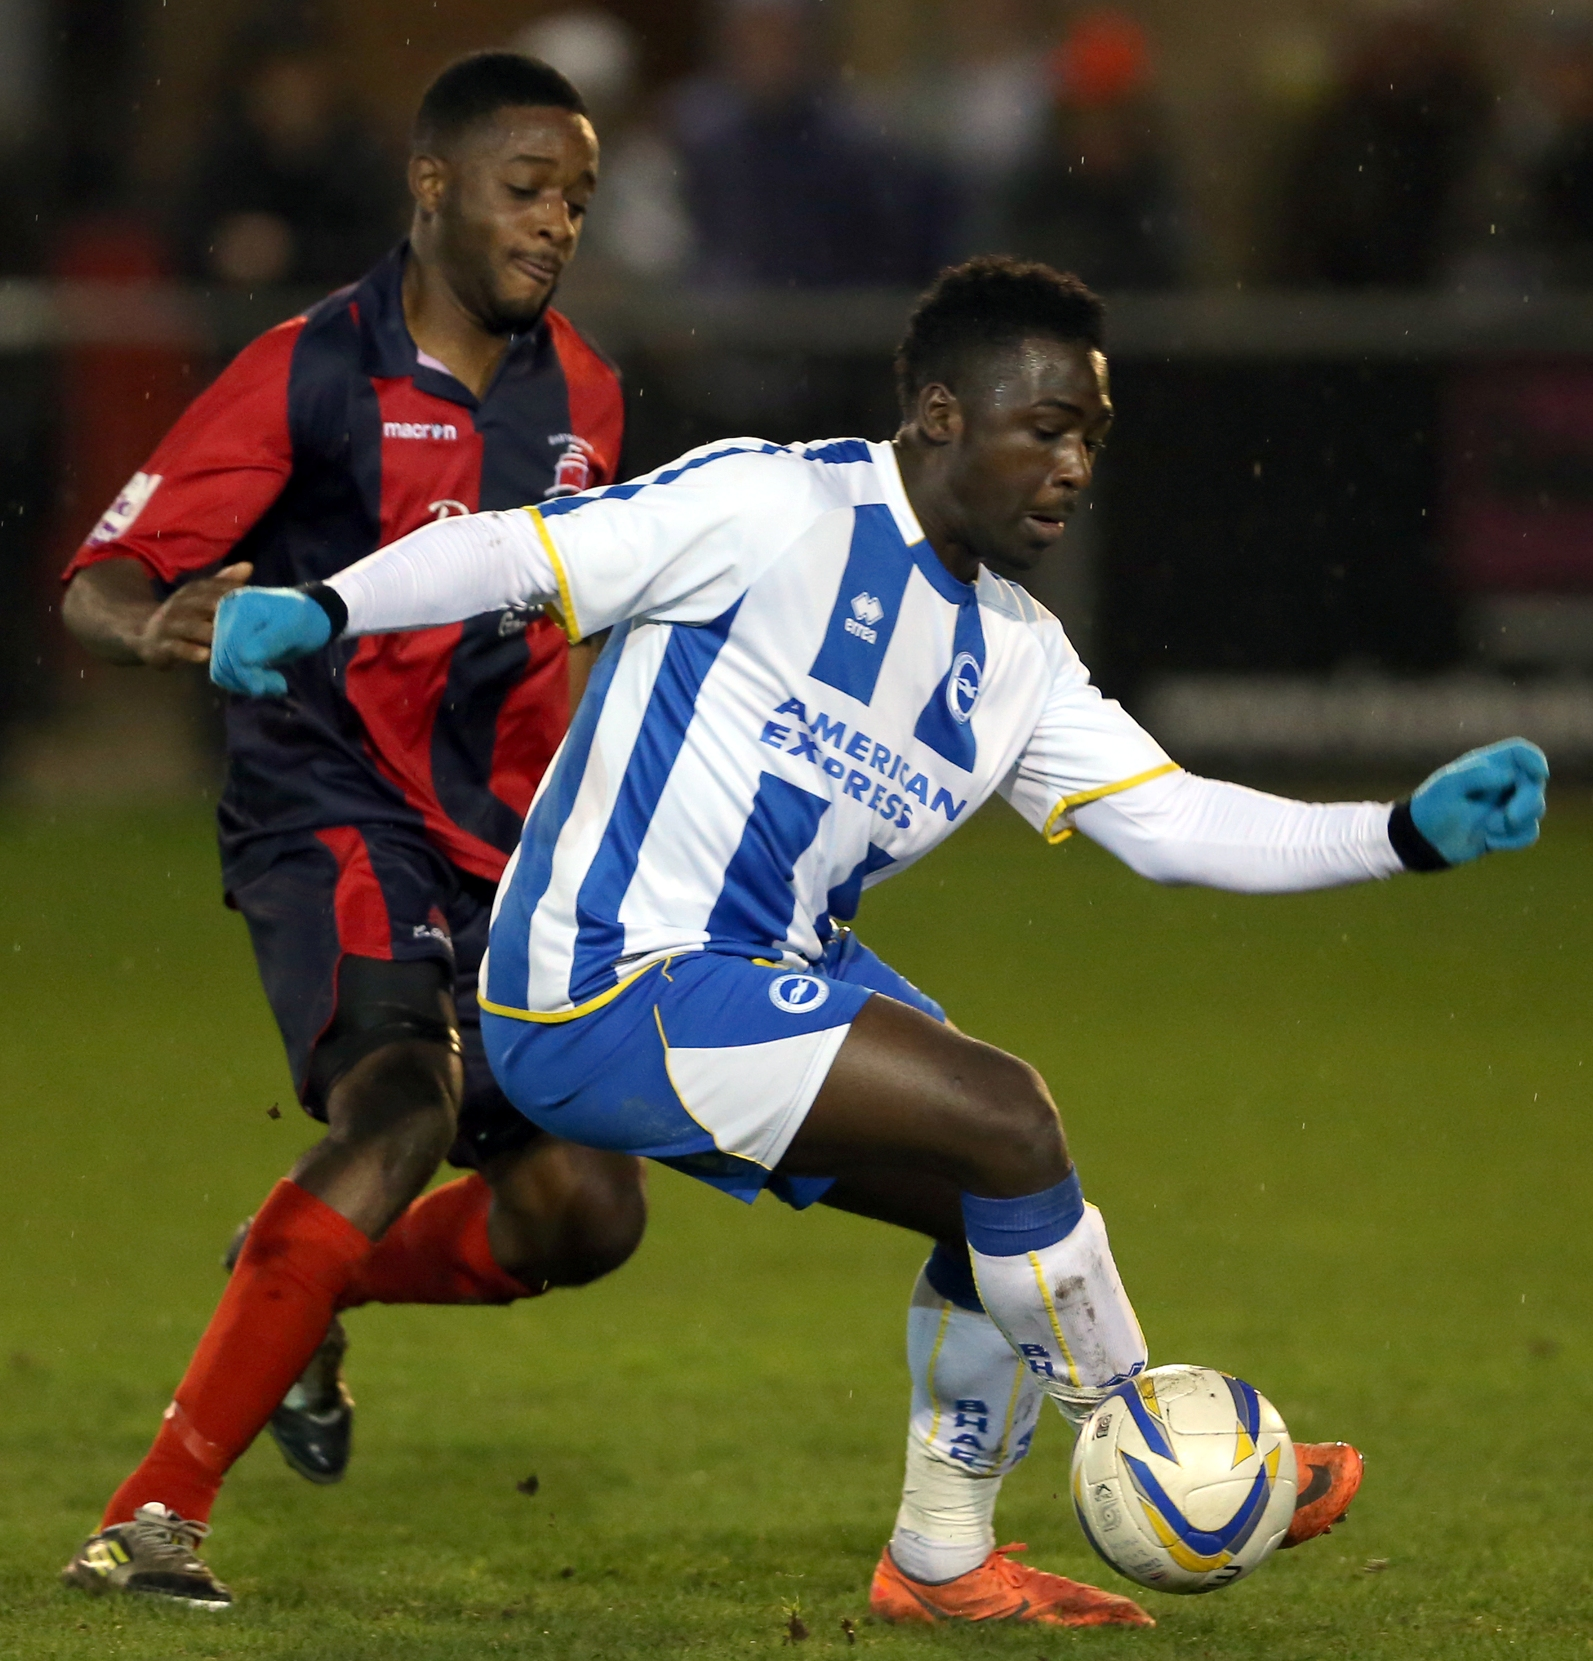 Jeffrey Monakana, who is on loan at Crawley from Albion, has been told to get in shape by Reds boss John Gregory